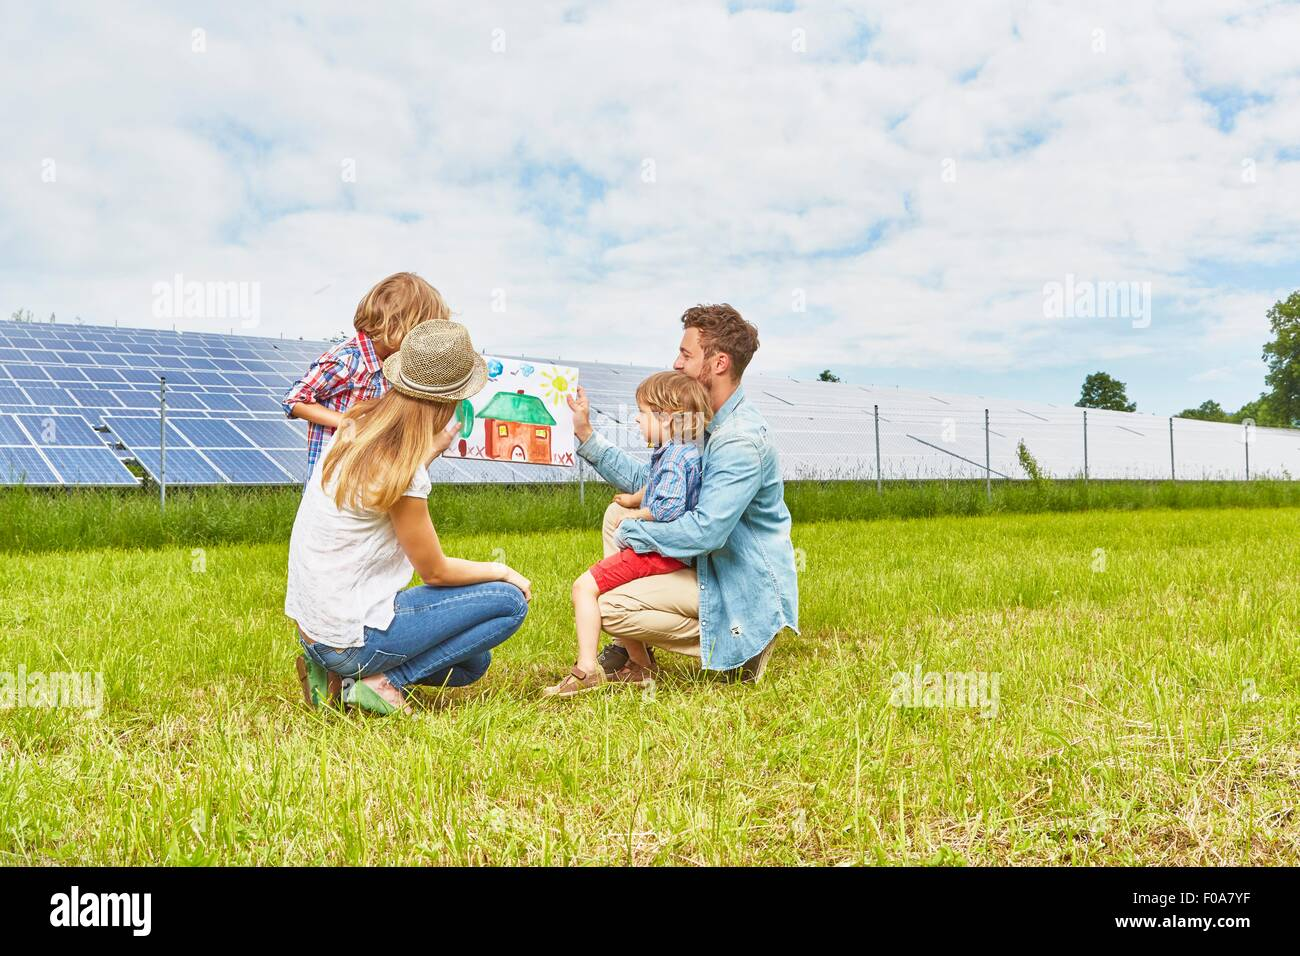 Young family sitting in field, looking at child's drawing of house, next to solar farm - Stock Image